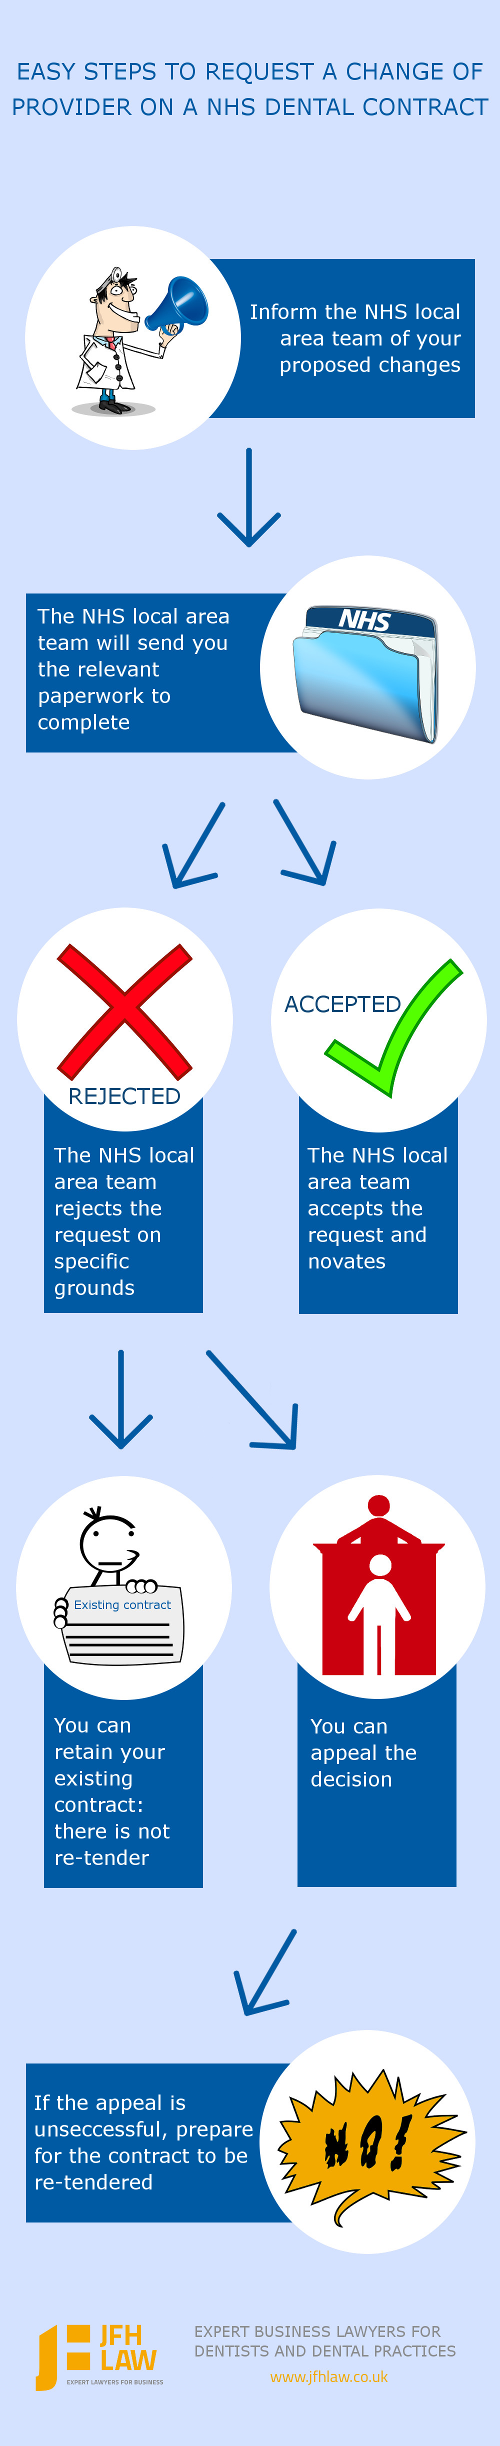 Infographic Easy steps to request a change of provider on a NHS dental contract